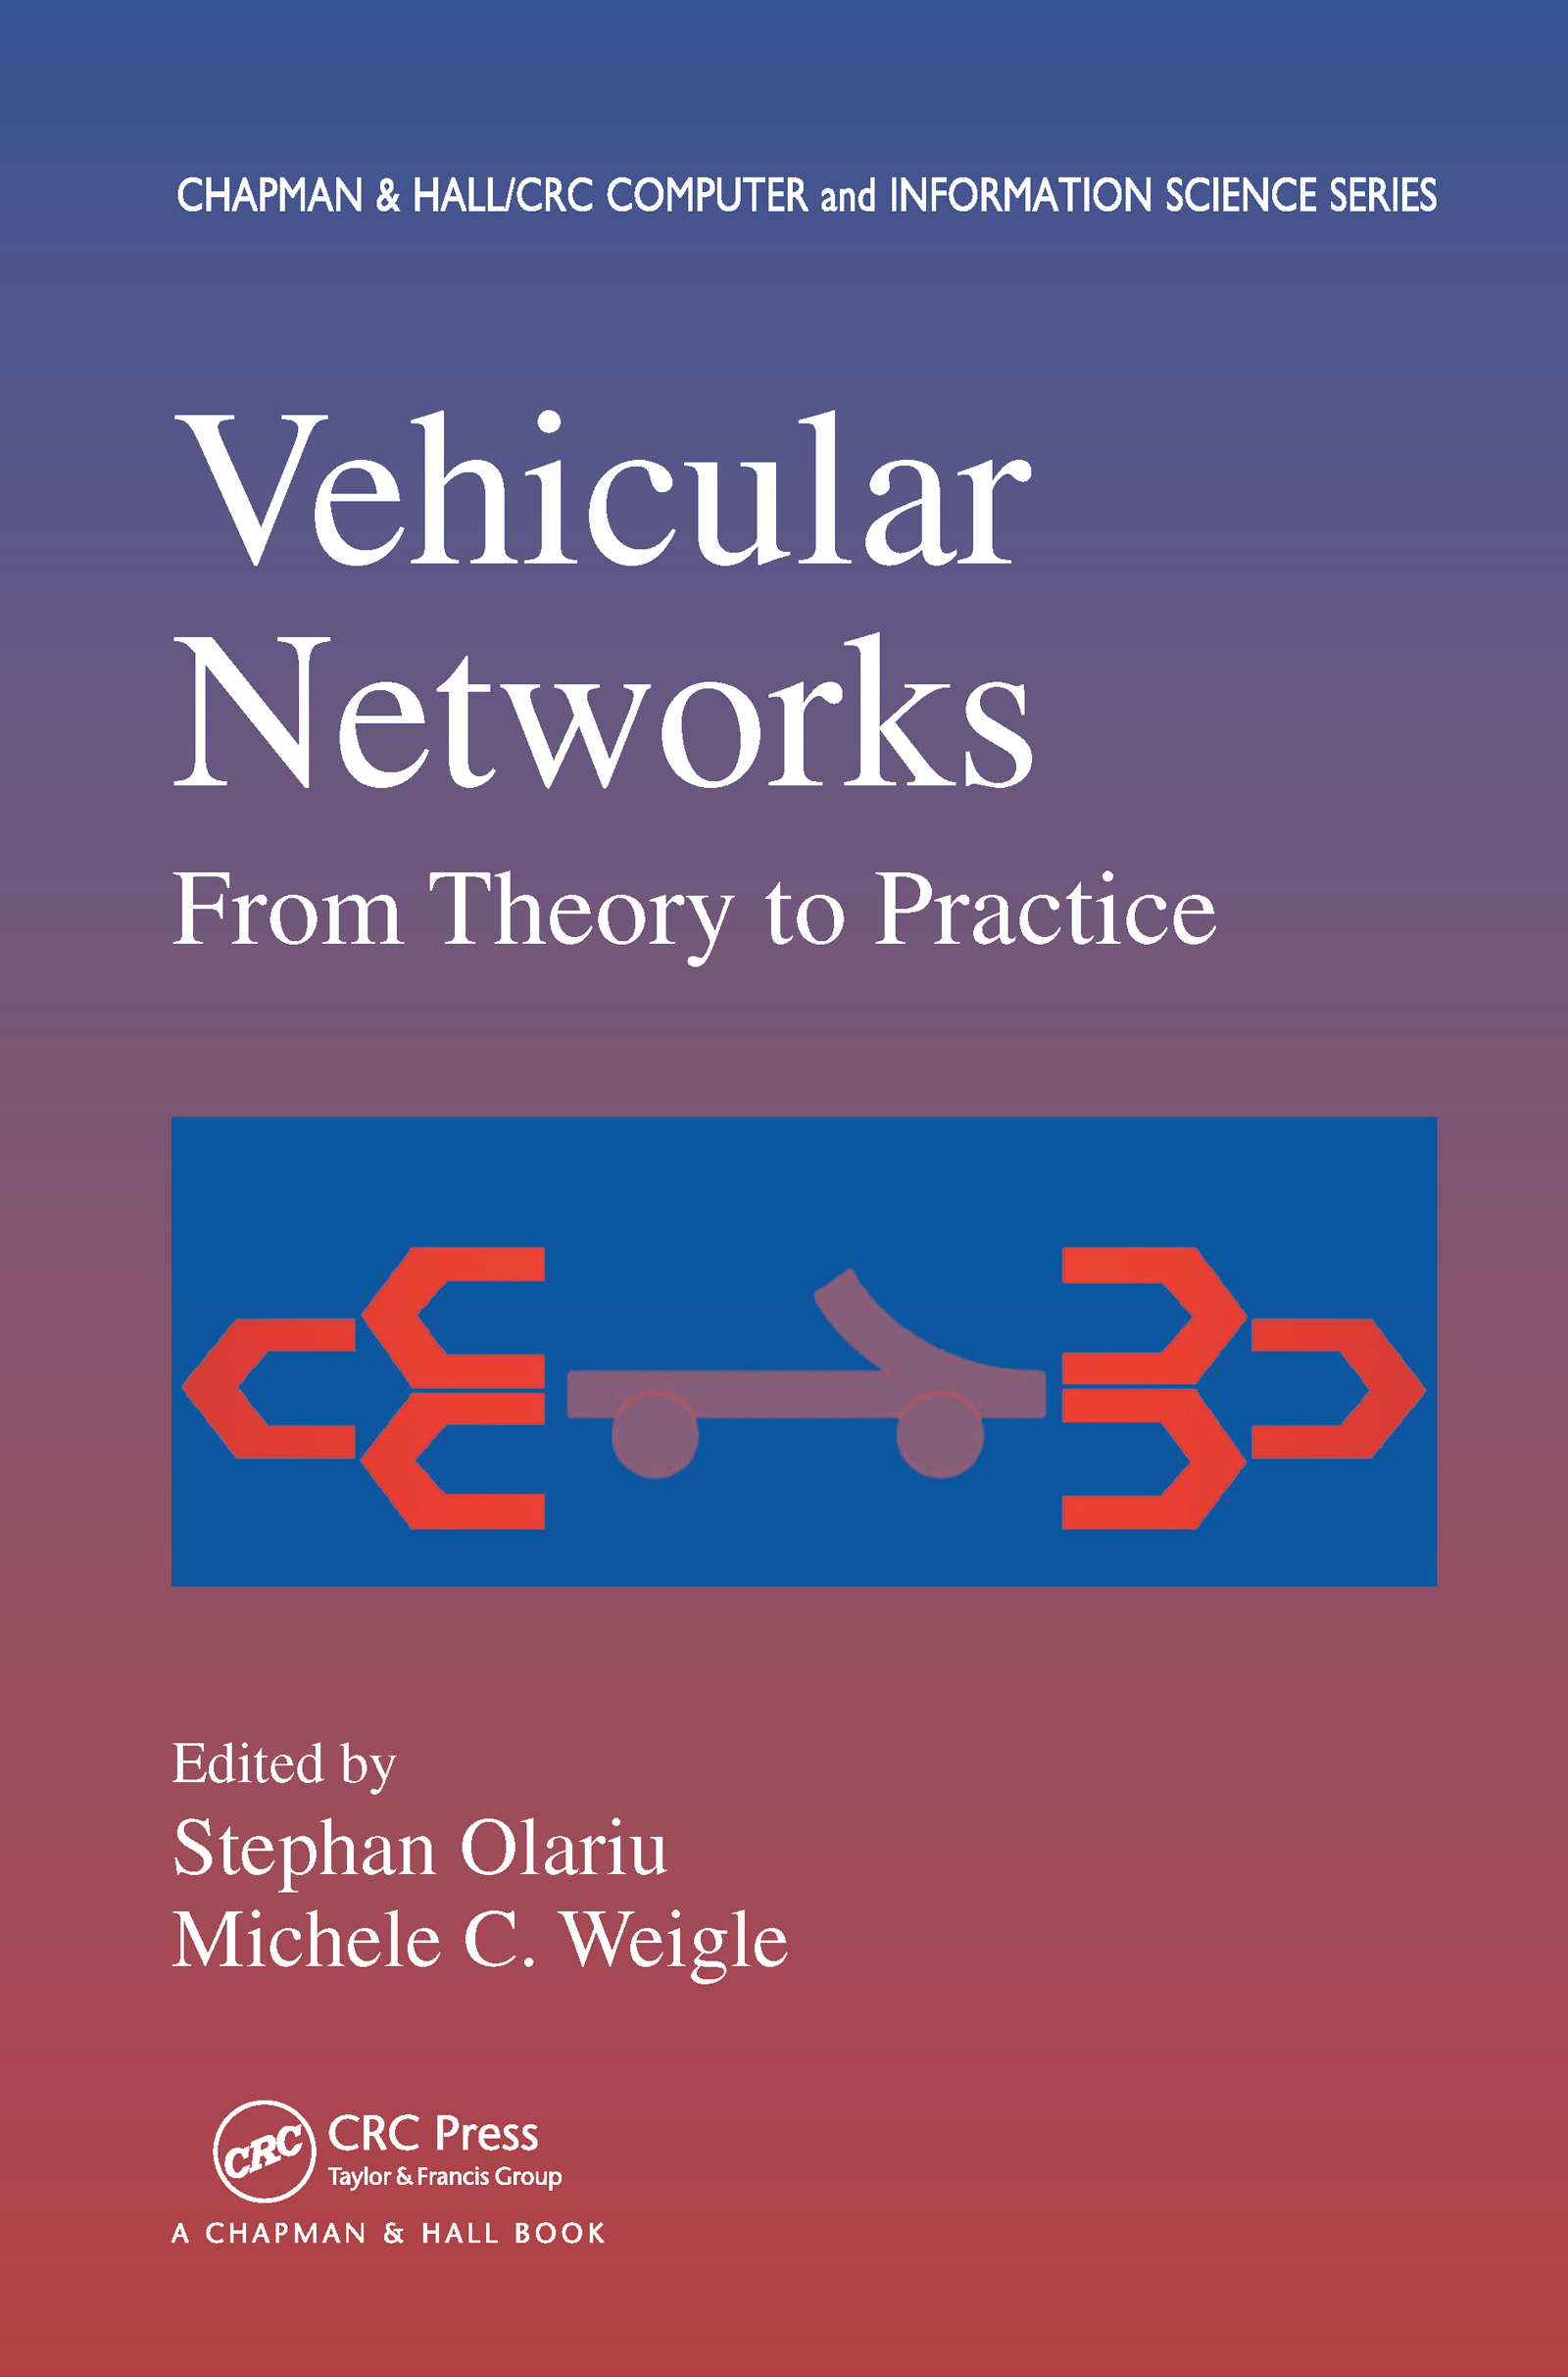 Vehicular Networks: From Theory to Practice book cover